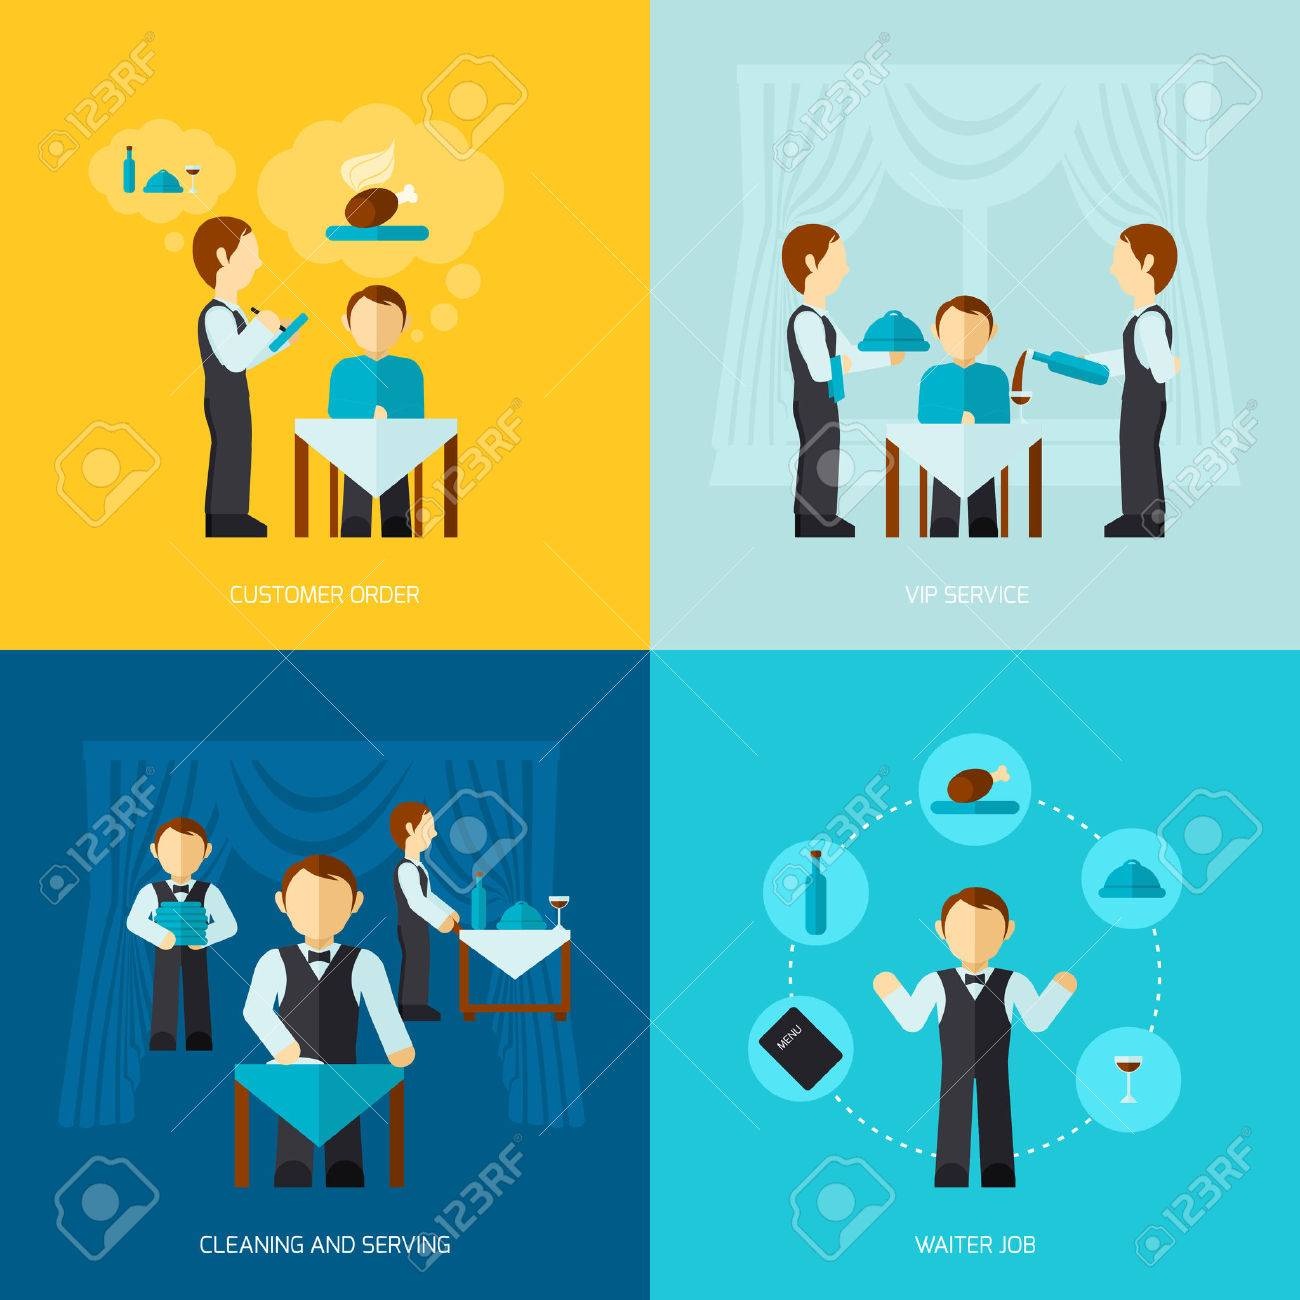 serving a customer stock photos pictures royalty serving a serving a customer waiter man job design concept customer order vip service cleaning and